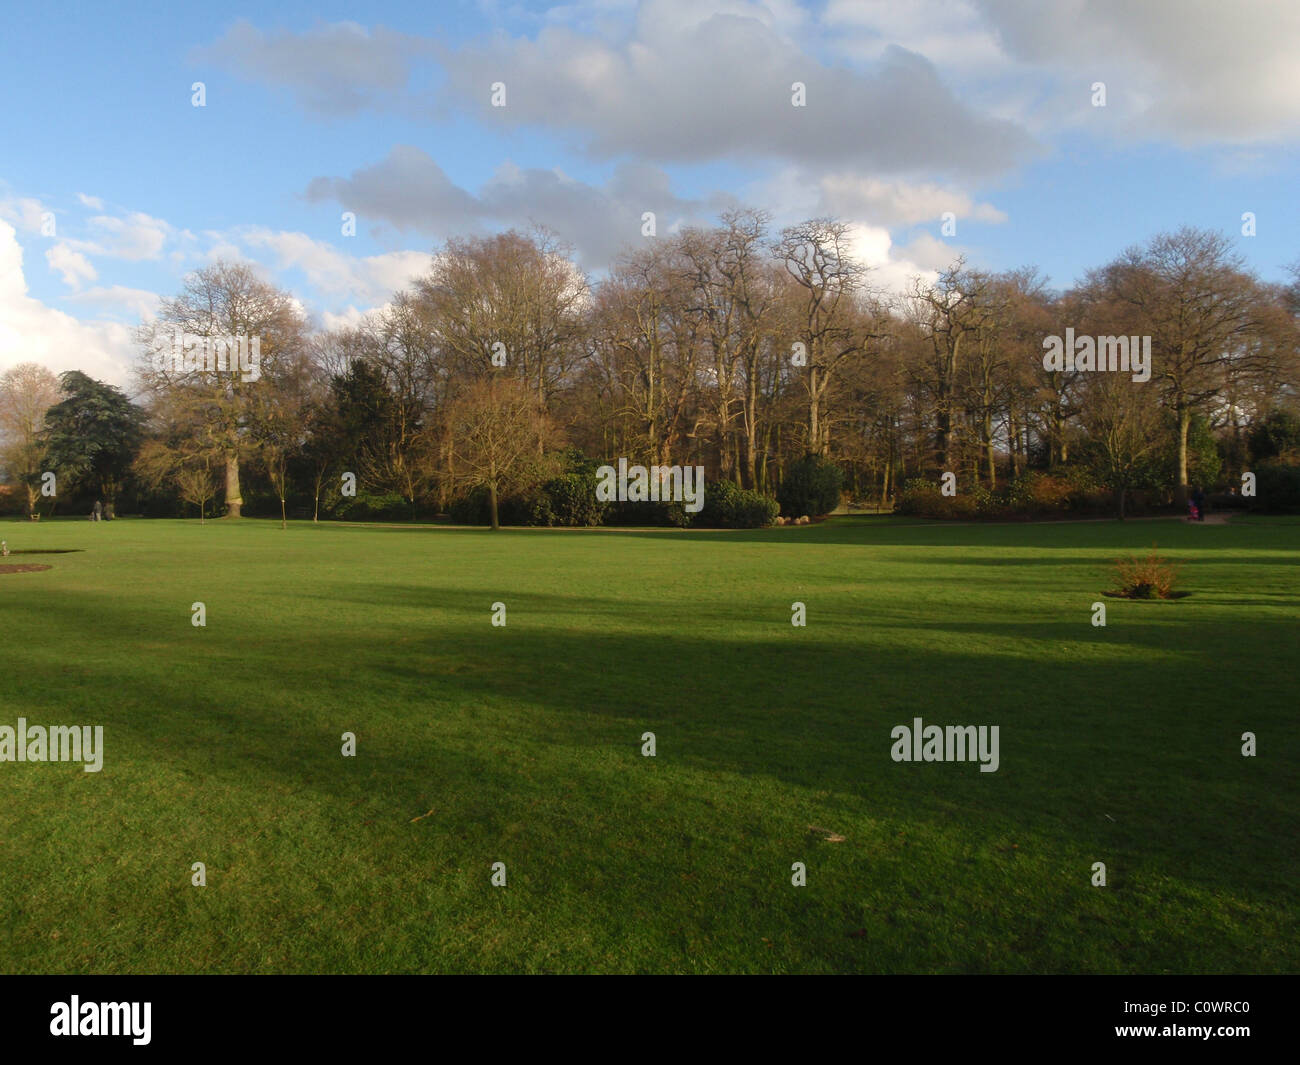 View of the Lawn and Trees at Dunham Massey in Cheshire England - Stock Image